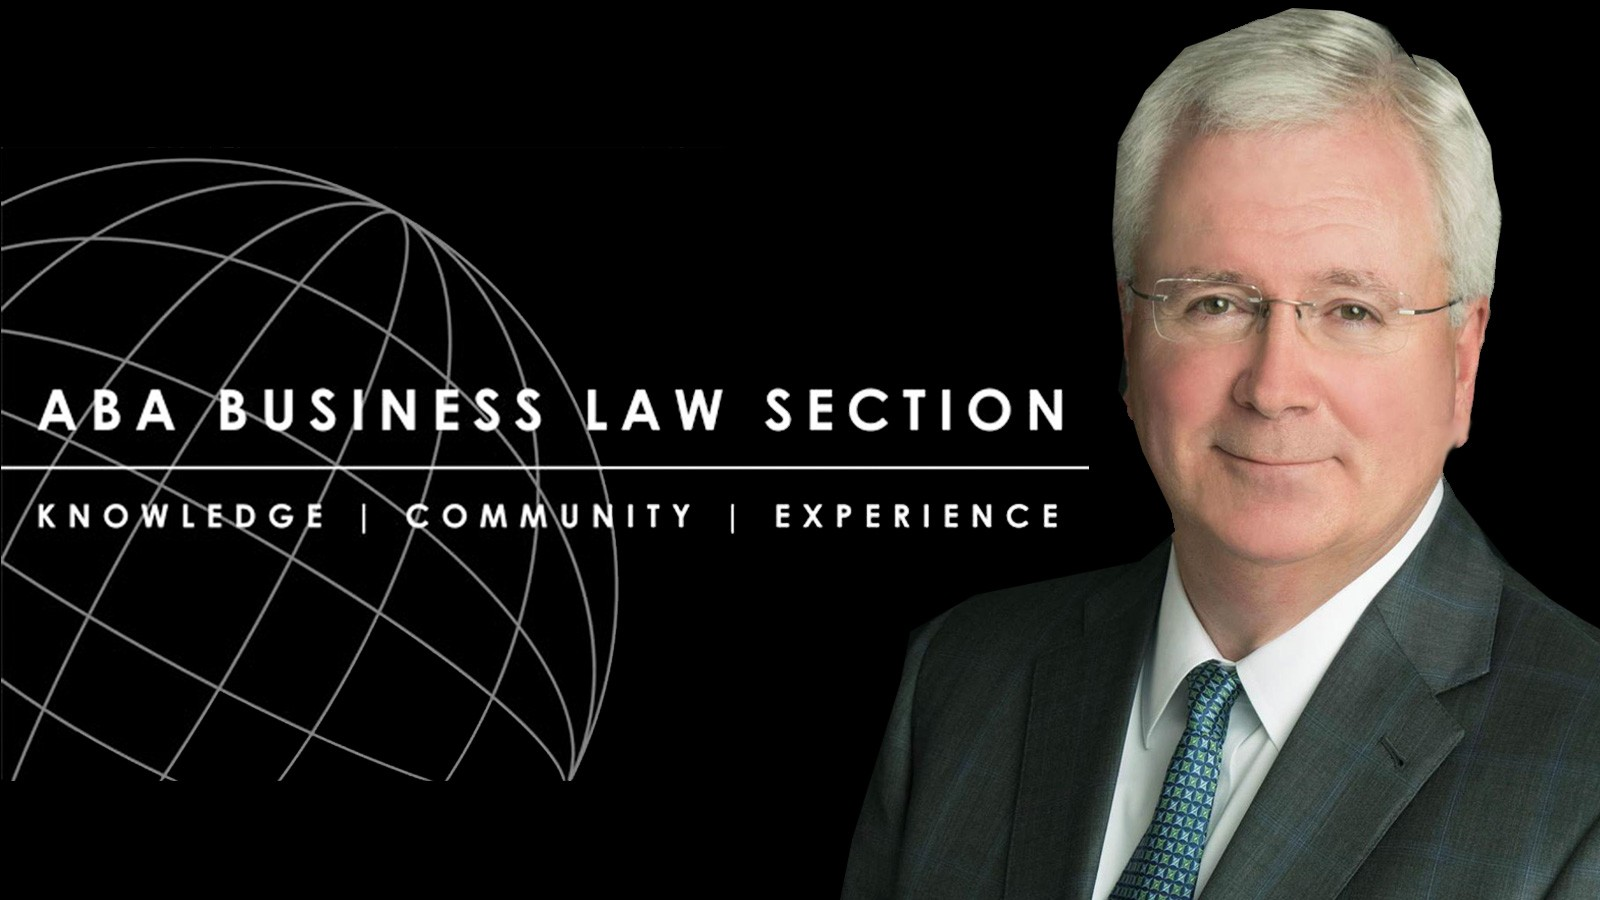 How the ABA Business Law Section helped me ABA for Law Students